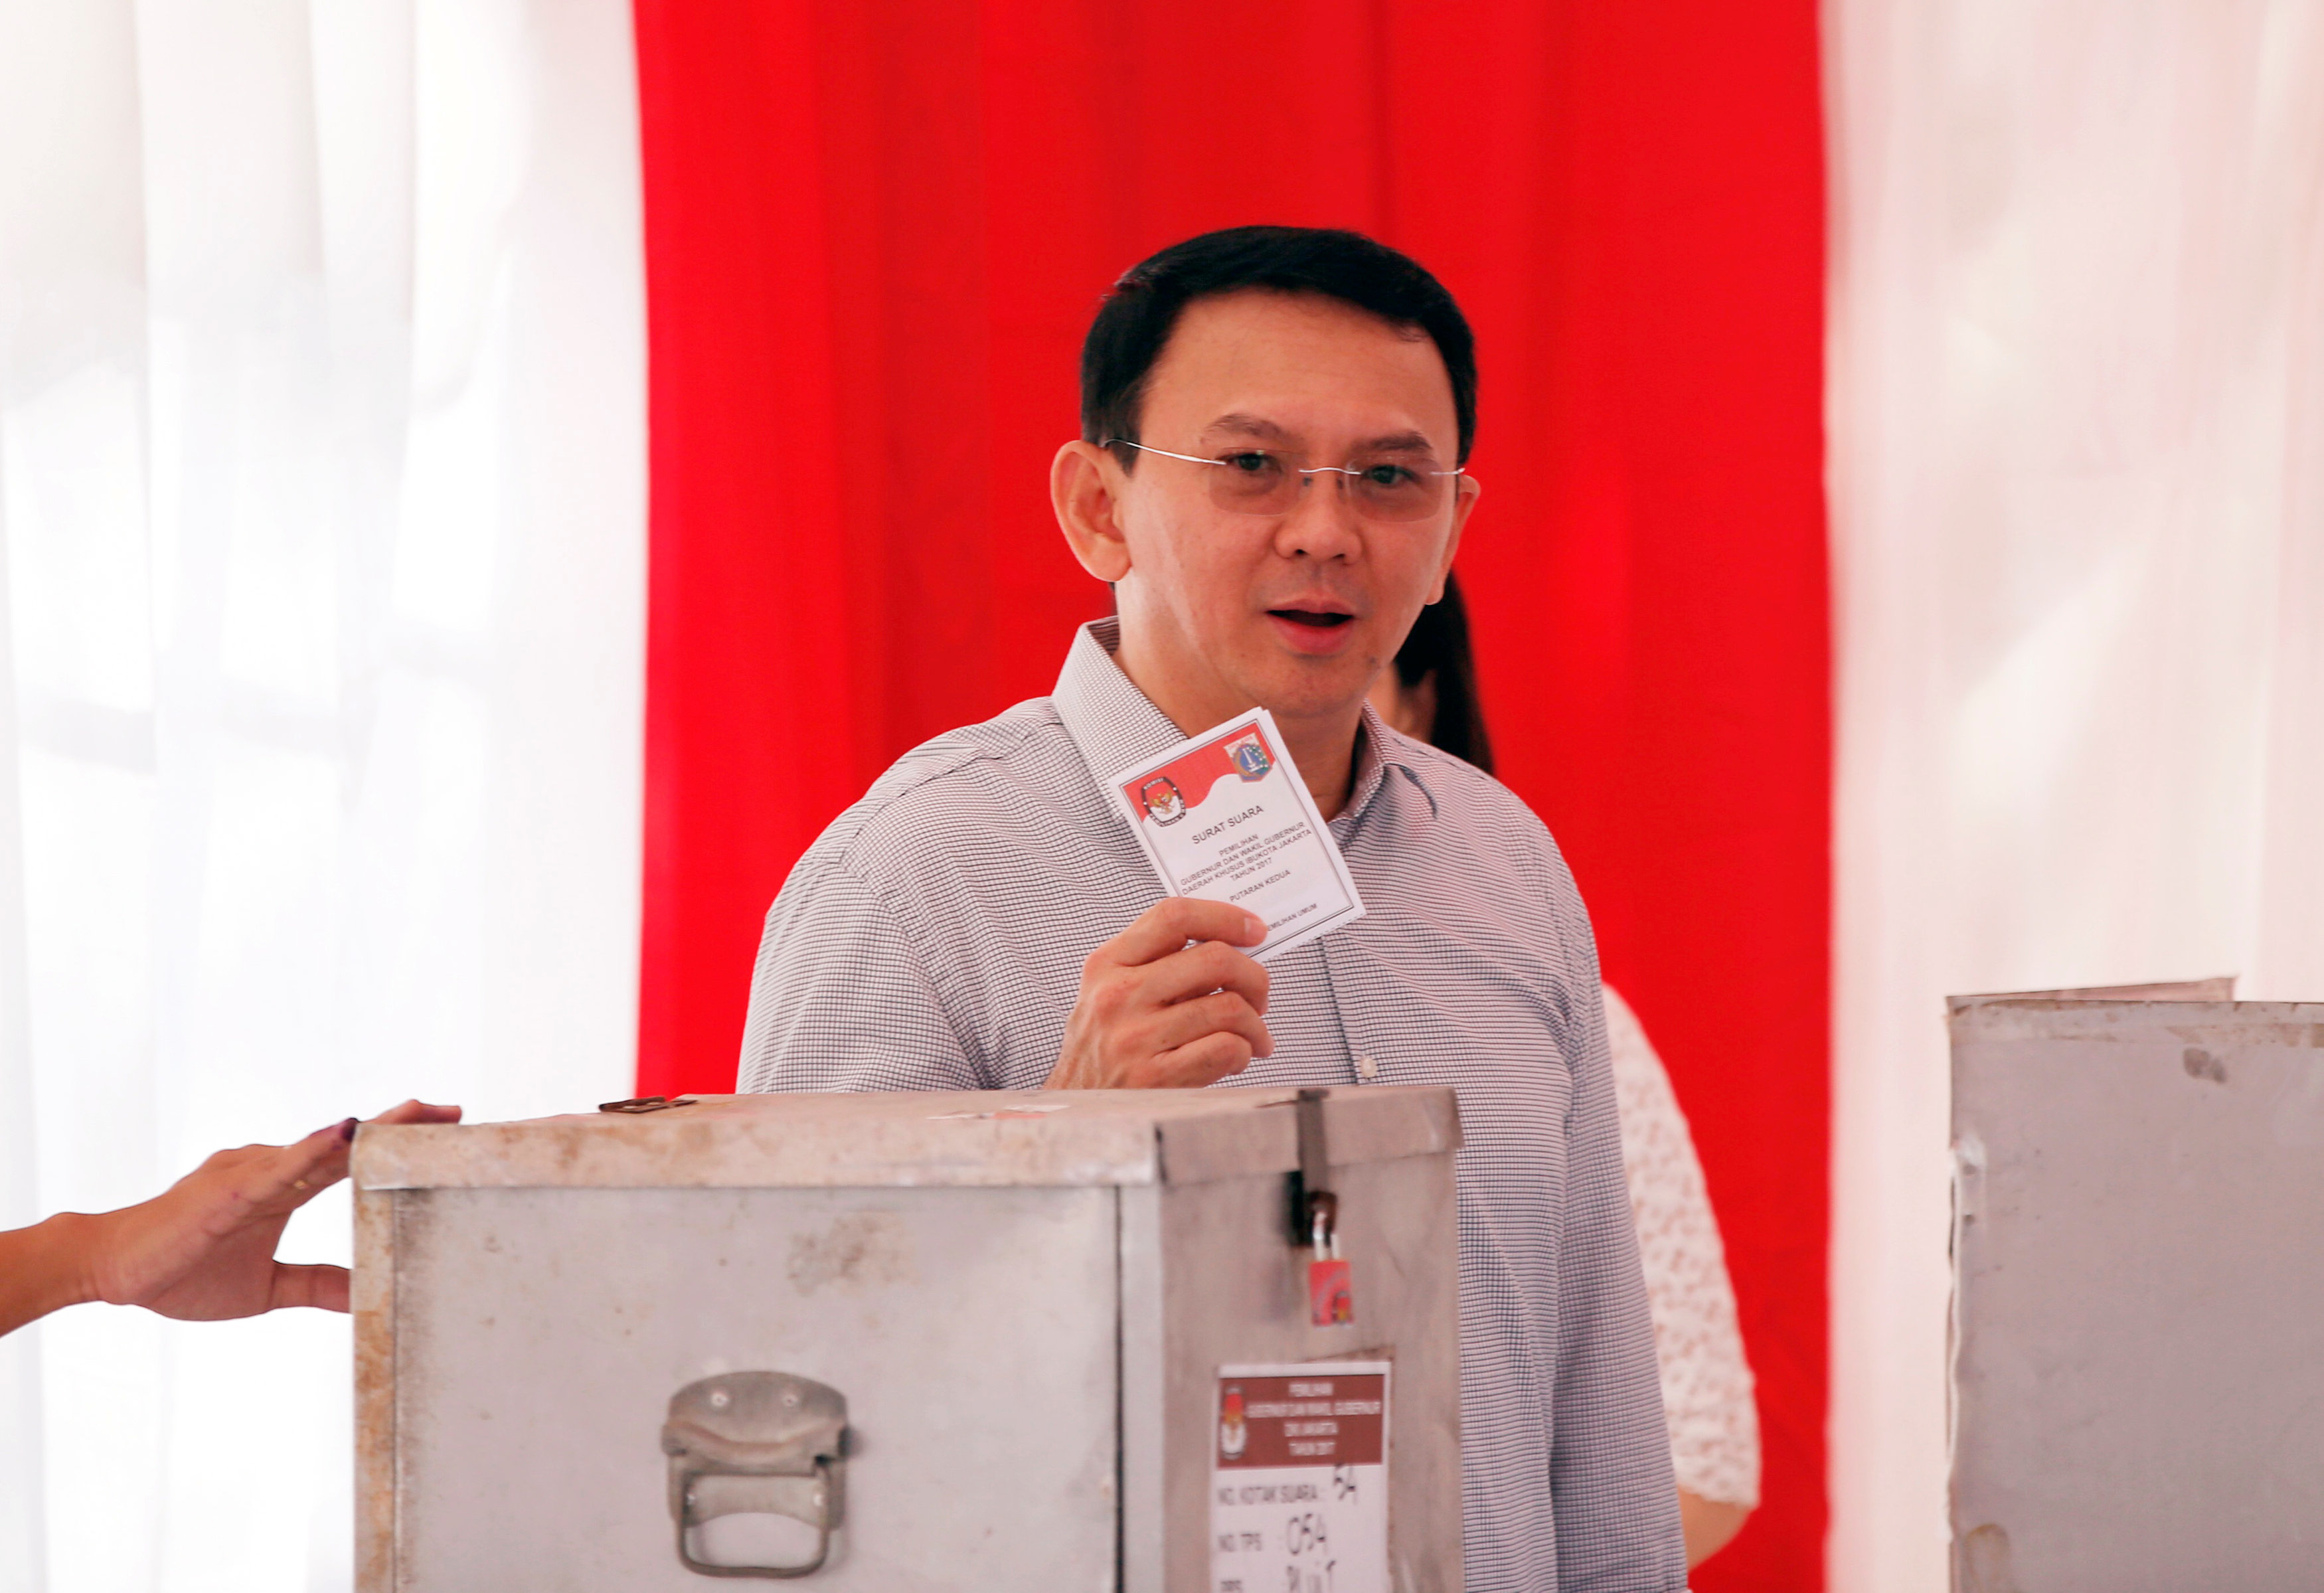 Indonesia: Muslim Candidate Wins Jakarta Elections